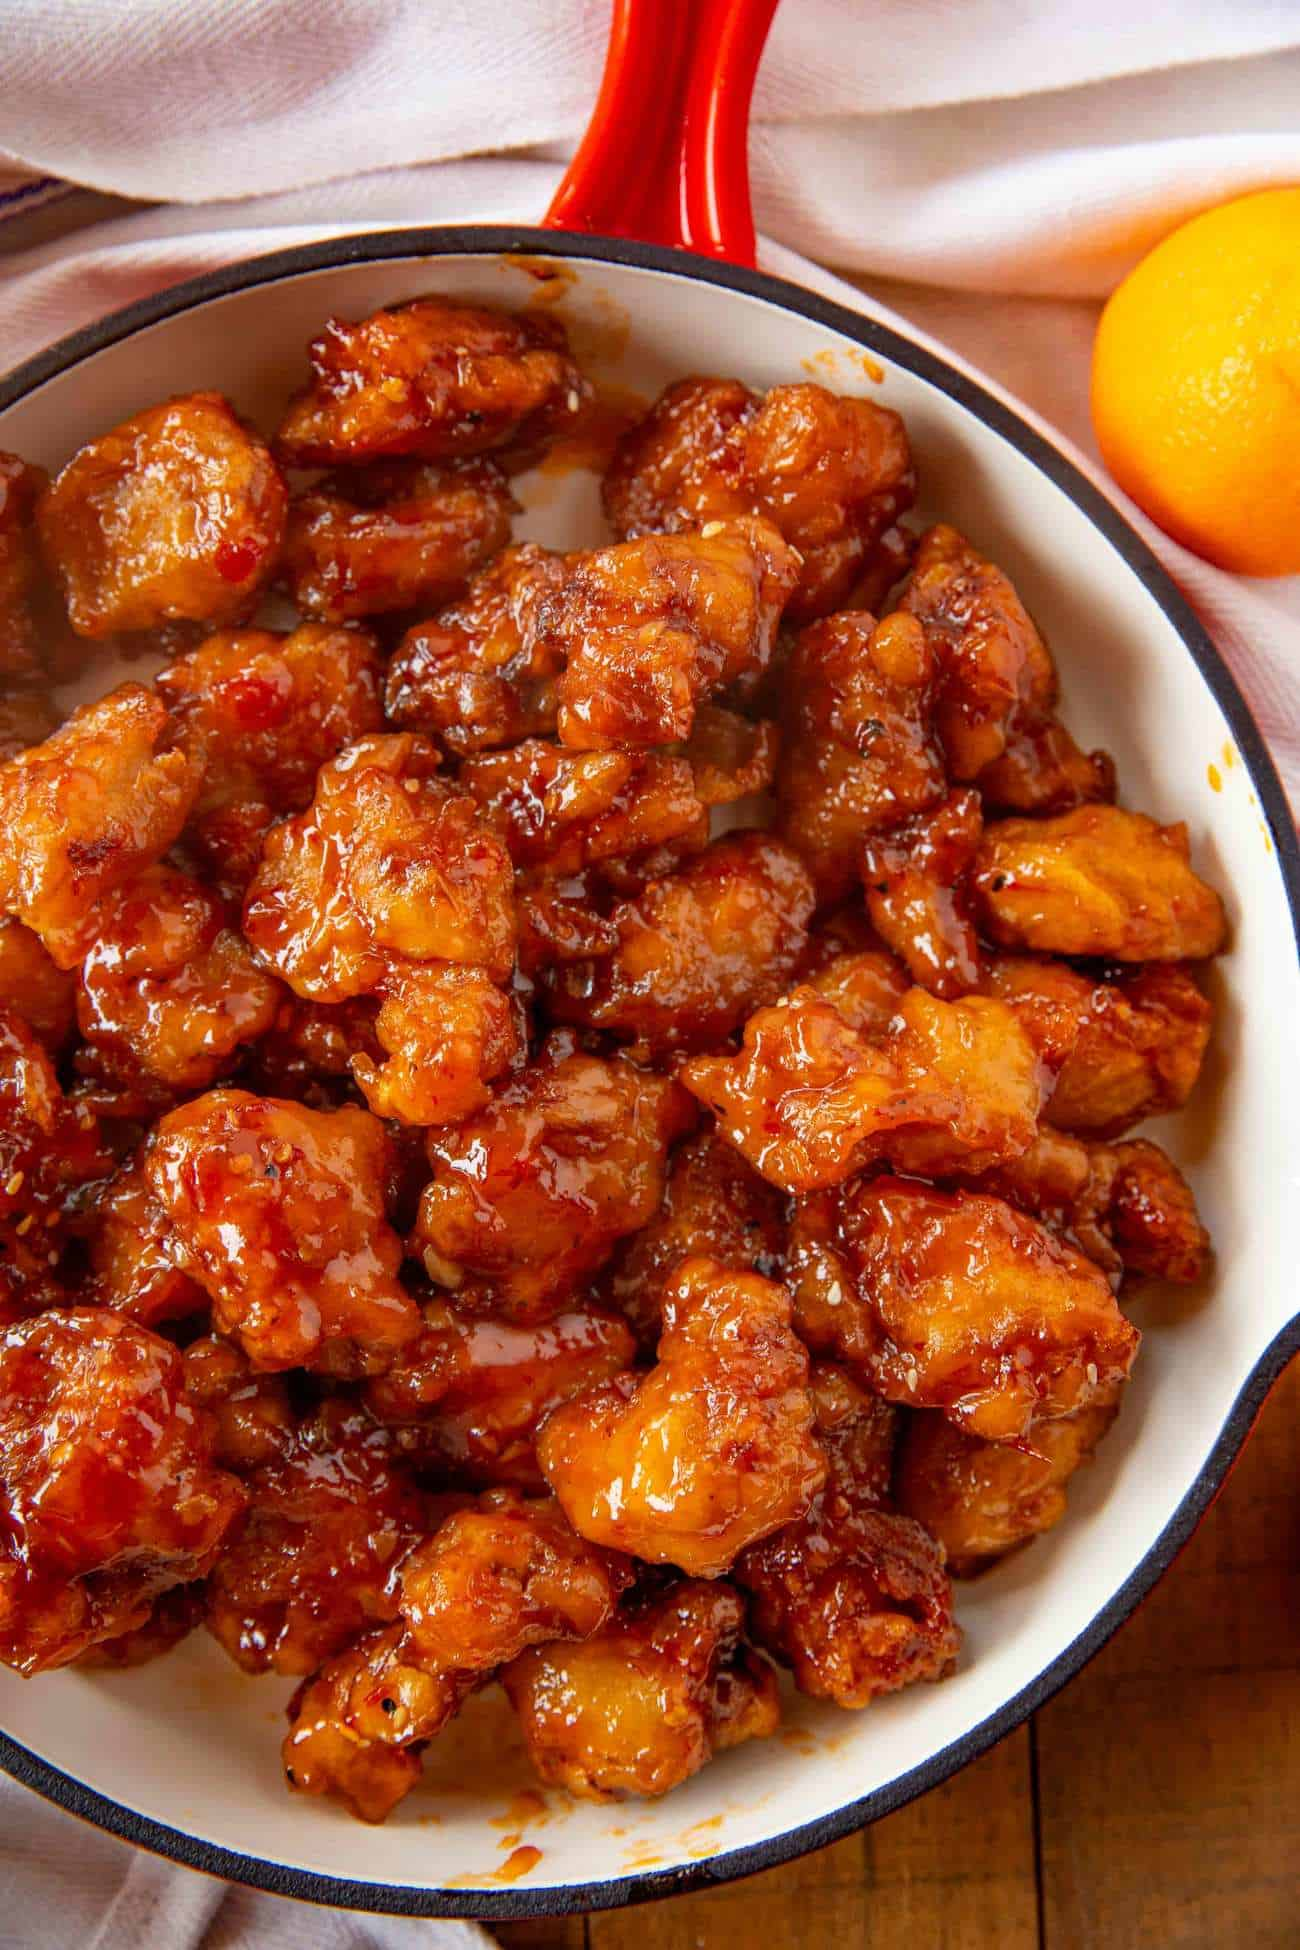 Healthier Easy Baked Orange Chicken Dinner Then Dessert